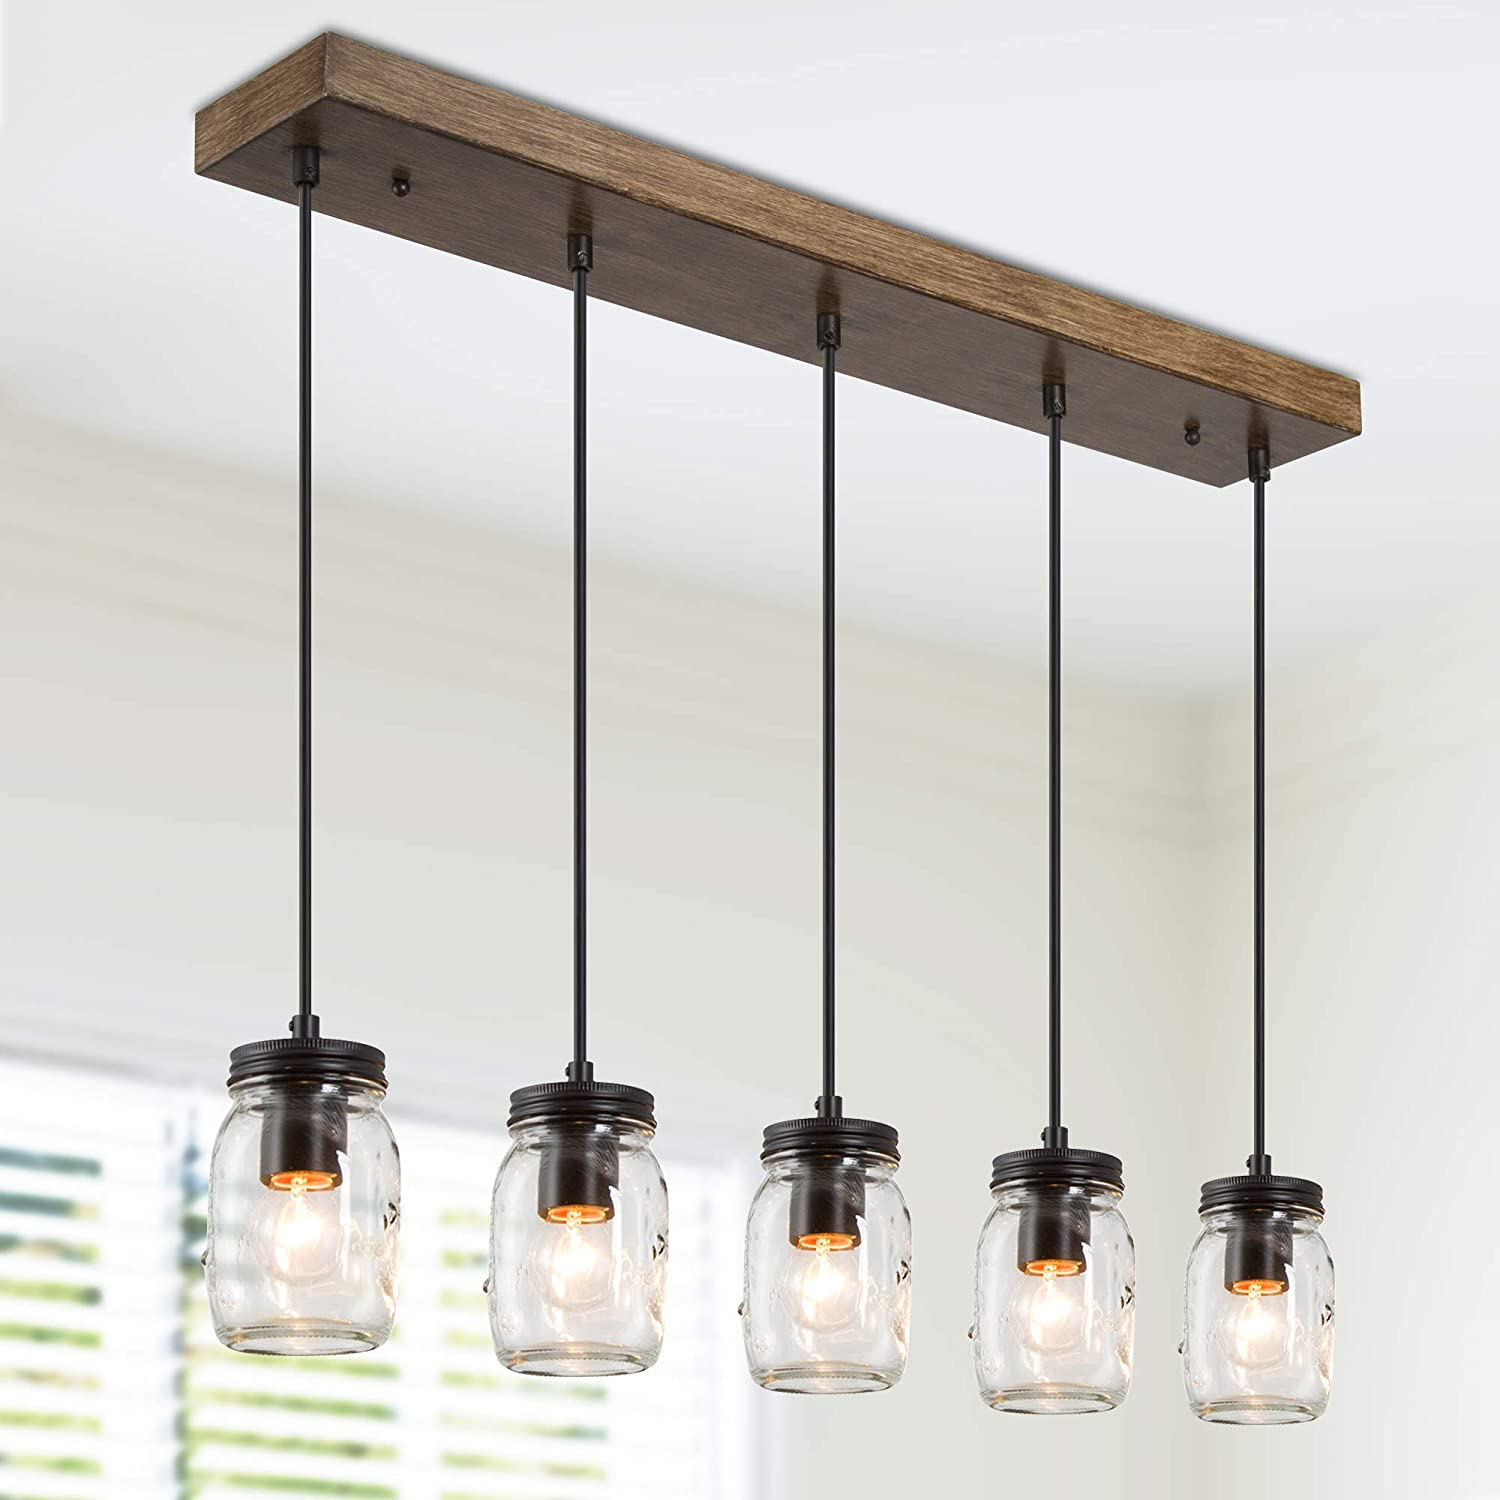 Dining Room Lighting Fixtures Hanging, Mason Jar Lights, 5-Light Pendant Lighting for Kitchen Island with Faux Wood Finish, Brown